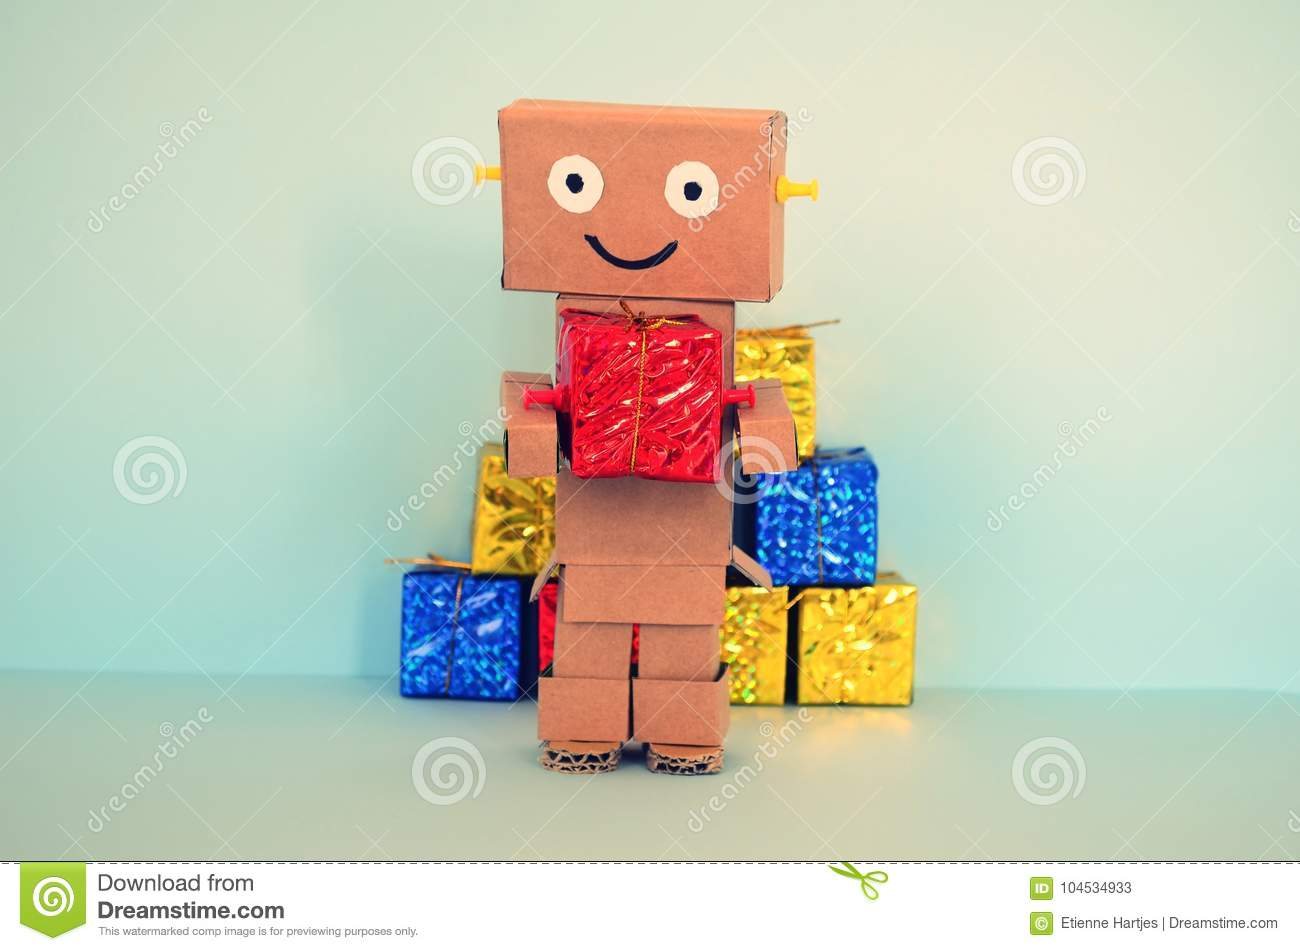 Online Shopping, Robot Brings Christmas Gifts Stock Image - Image of ...